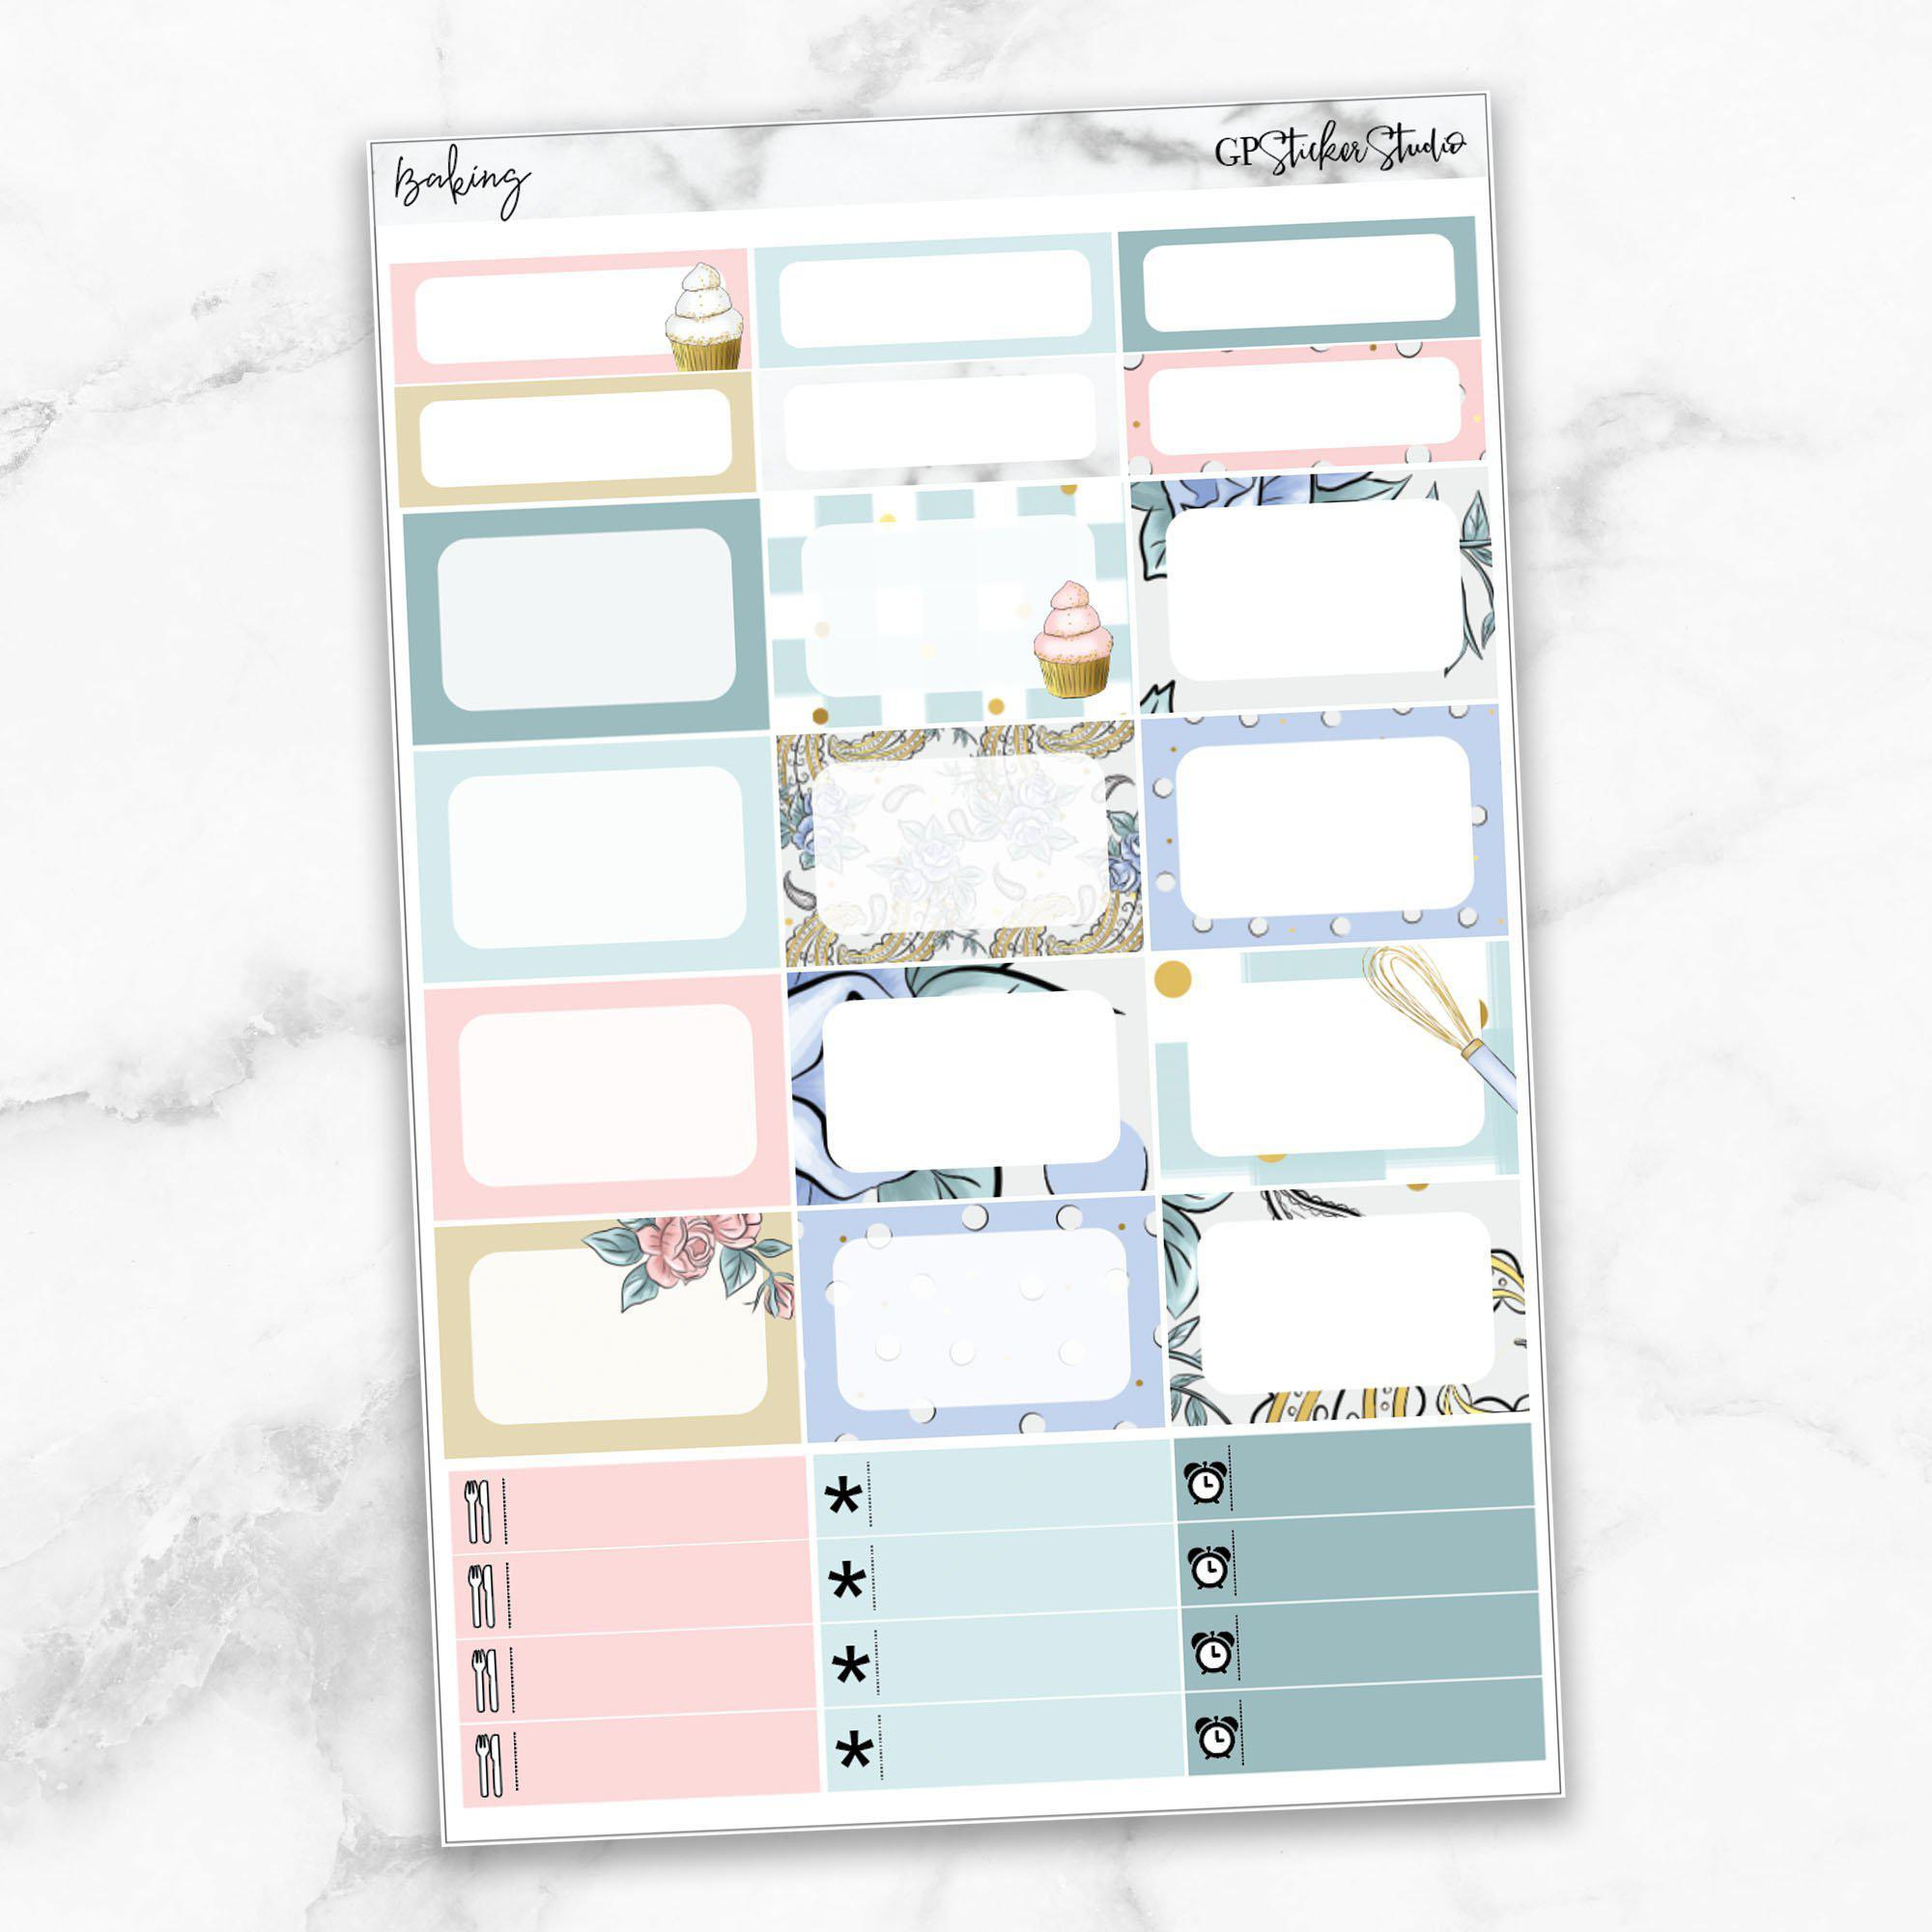 BAKING Half Boxes Planner Stickers-The GP Studio